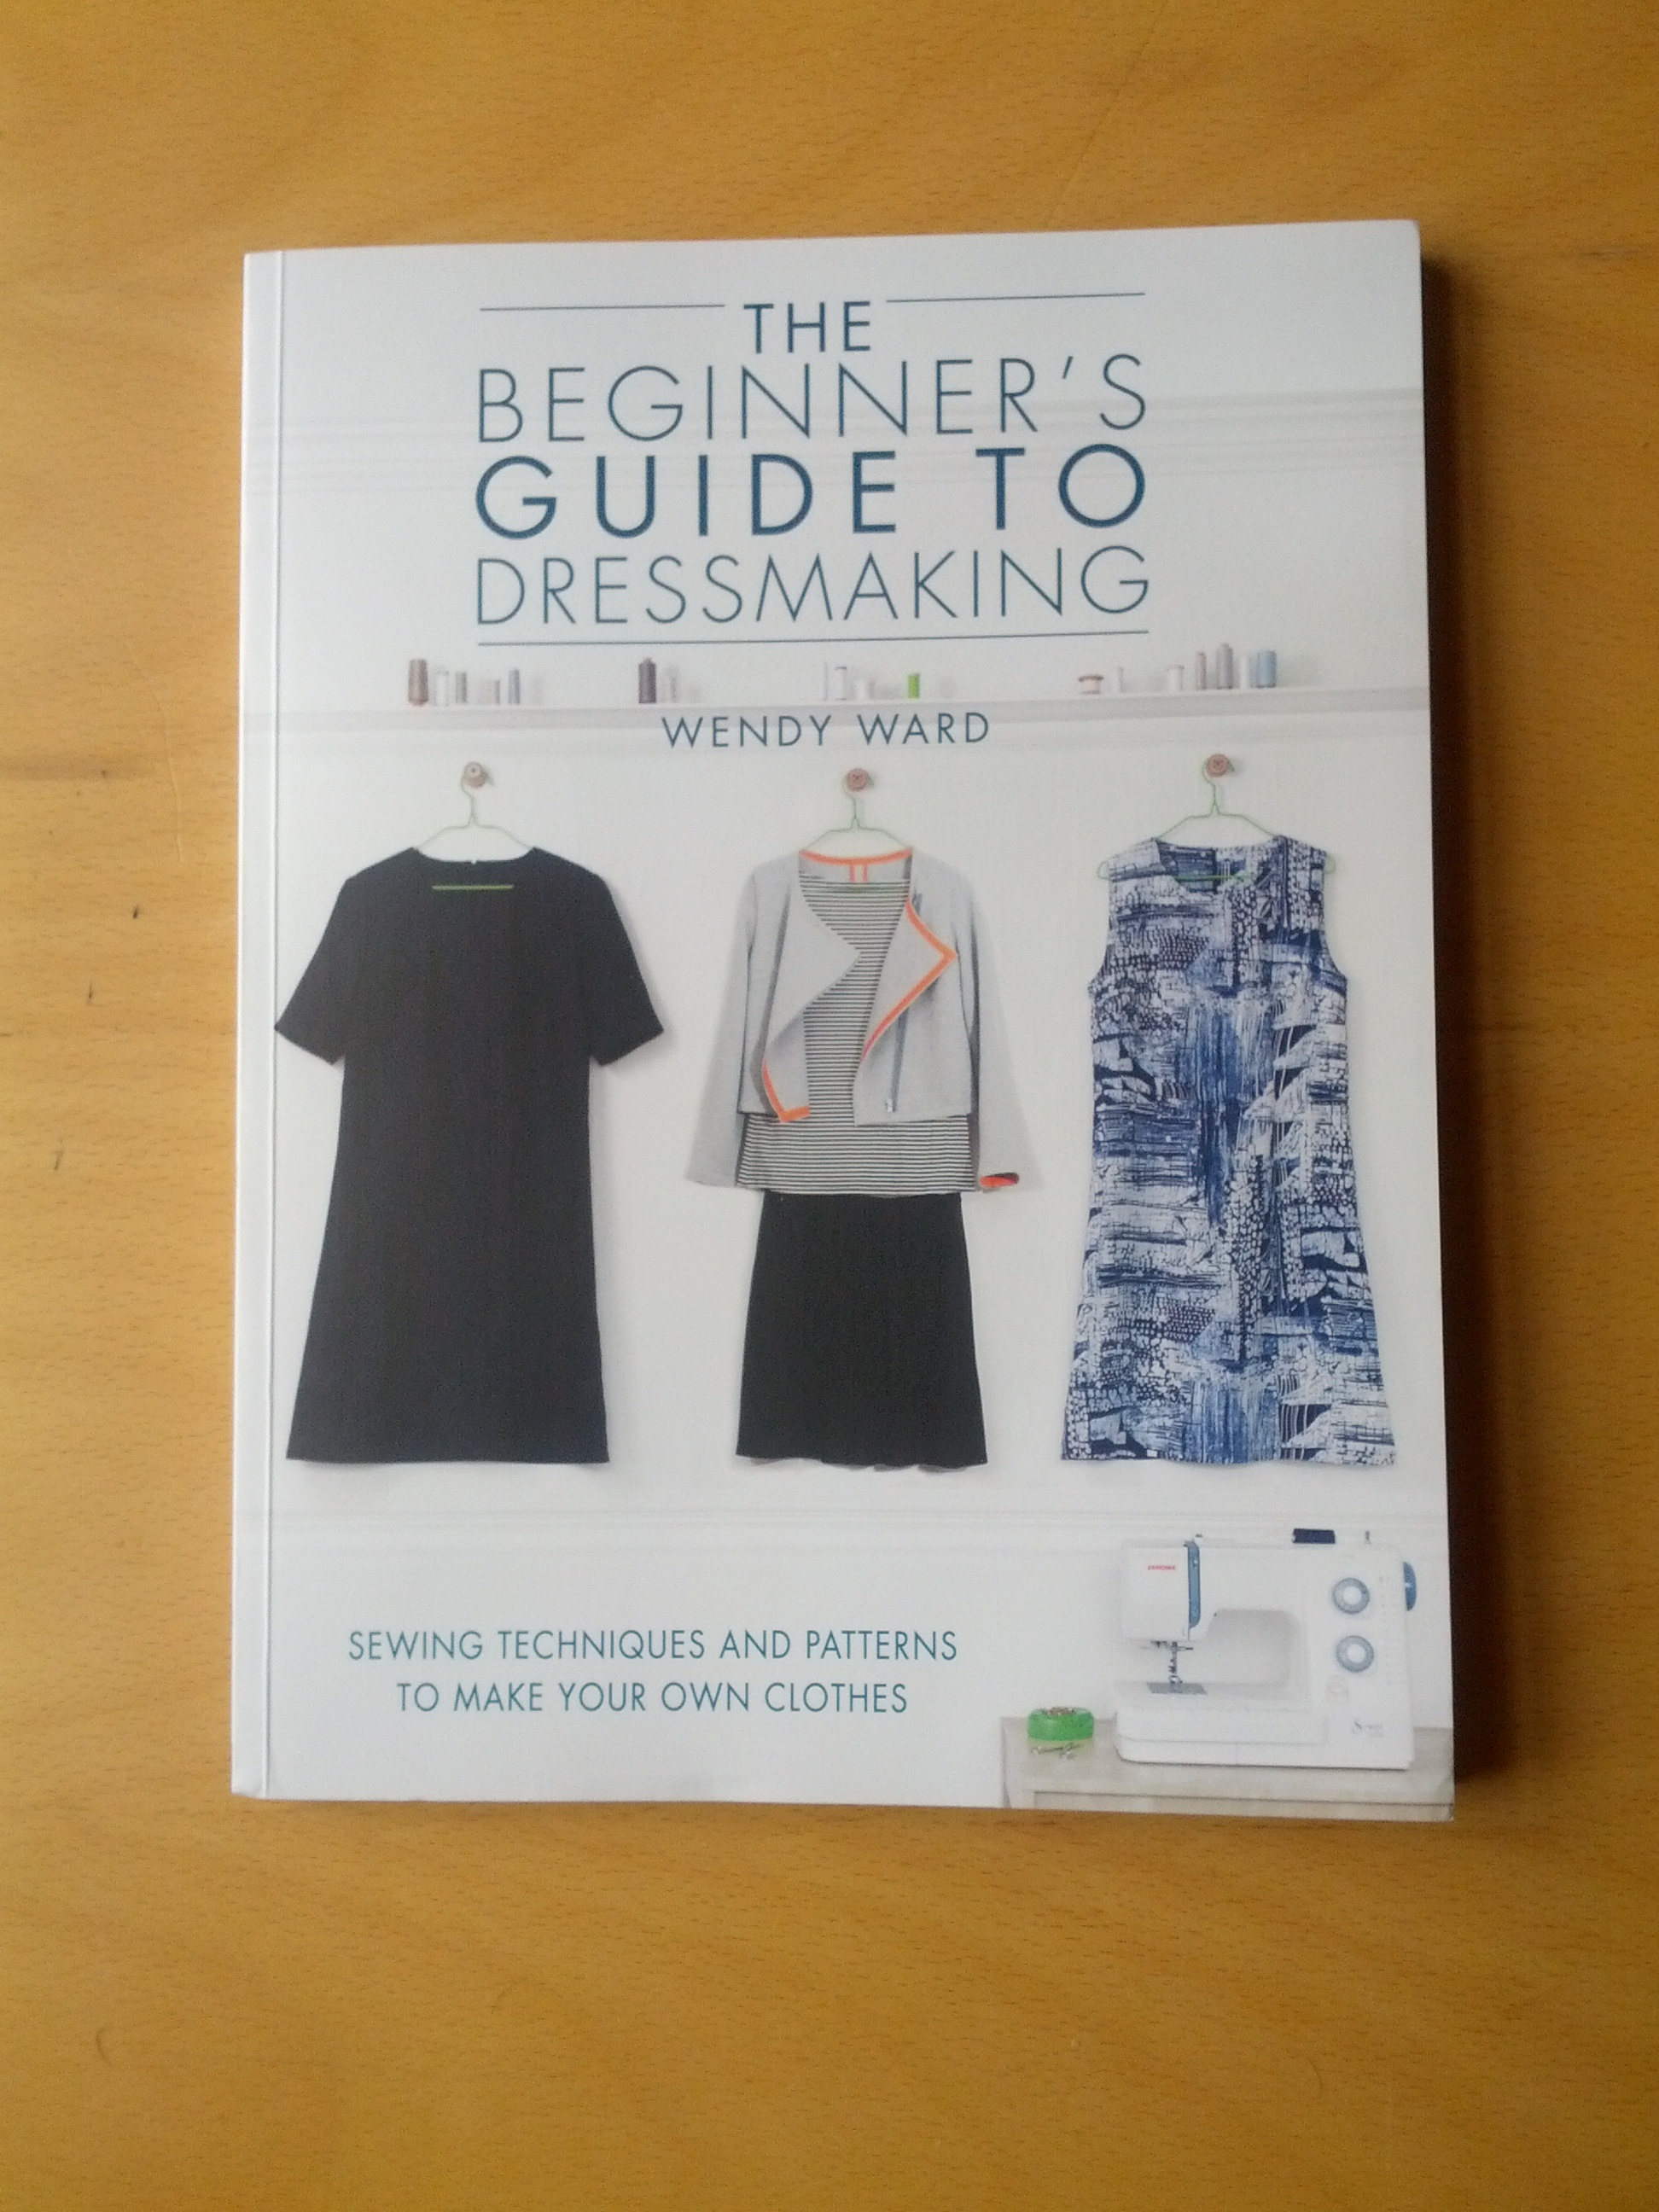 The Beginner's Guide to Dressmaking